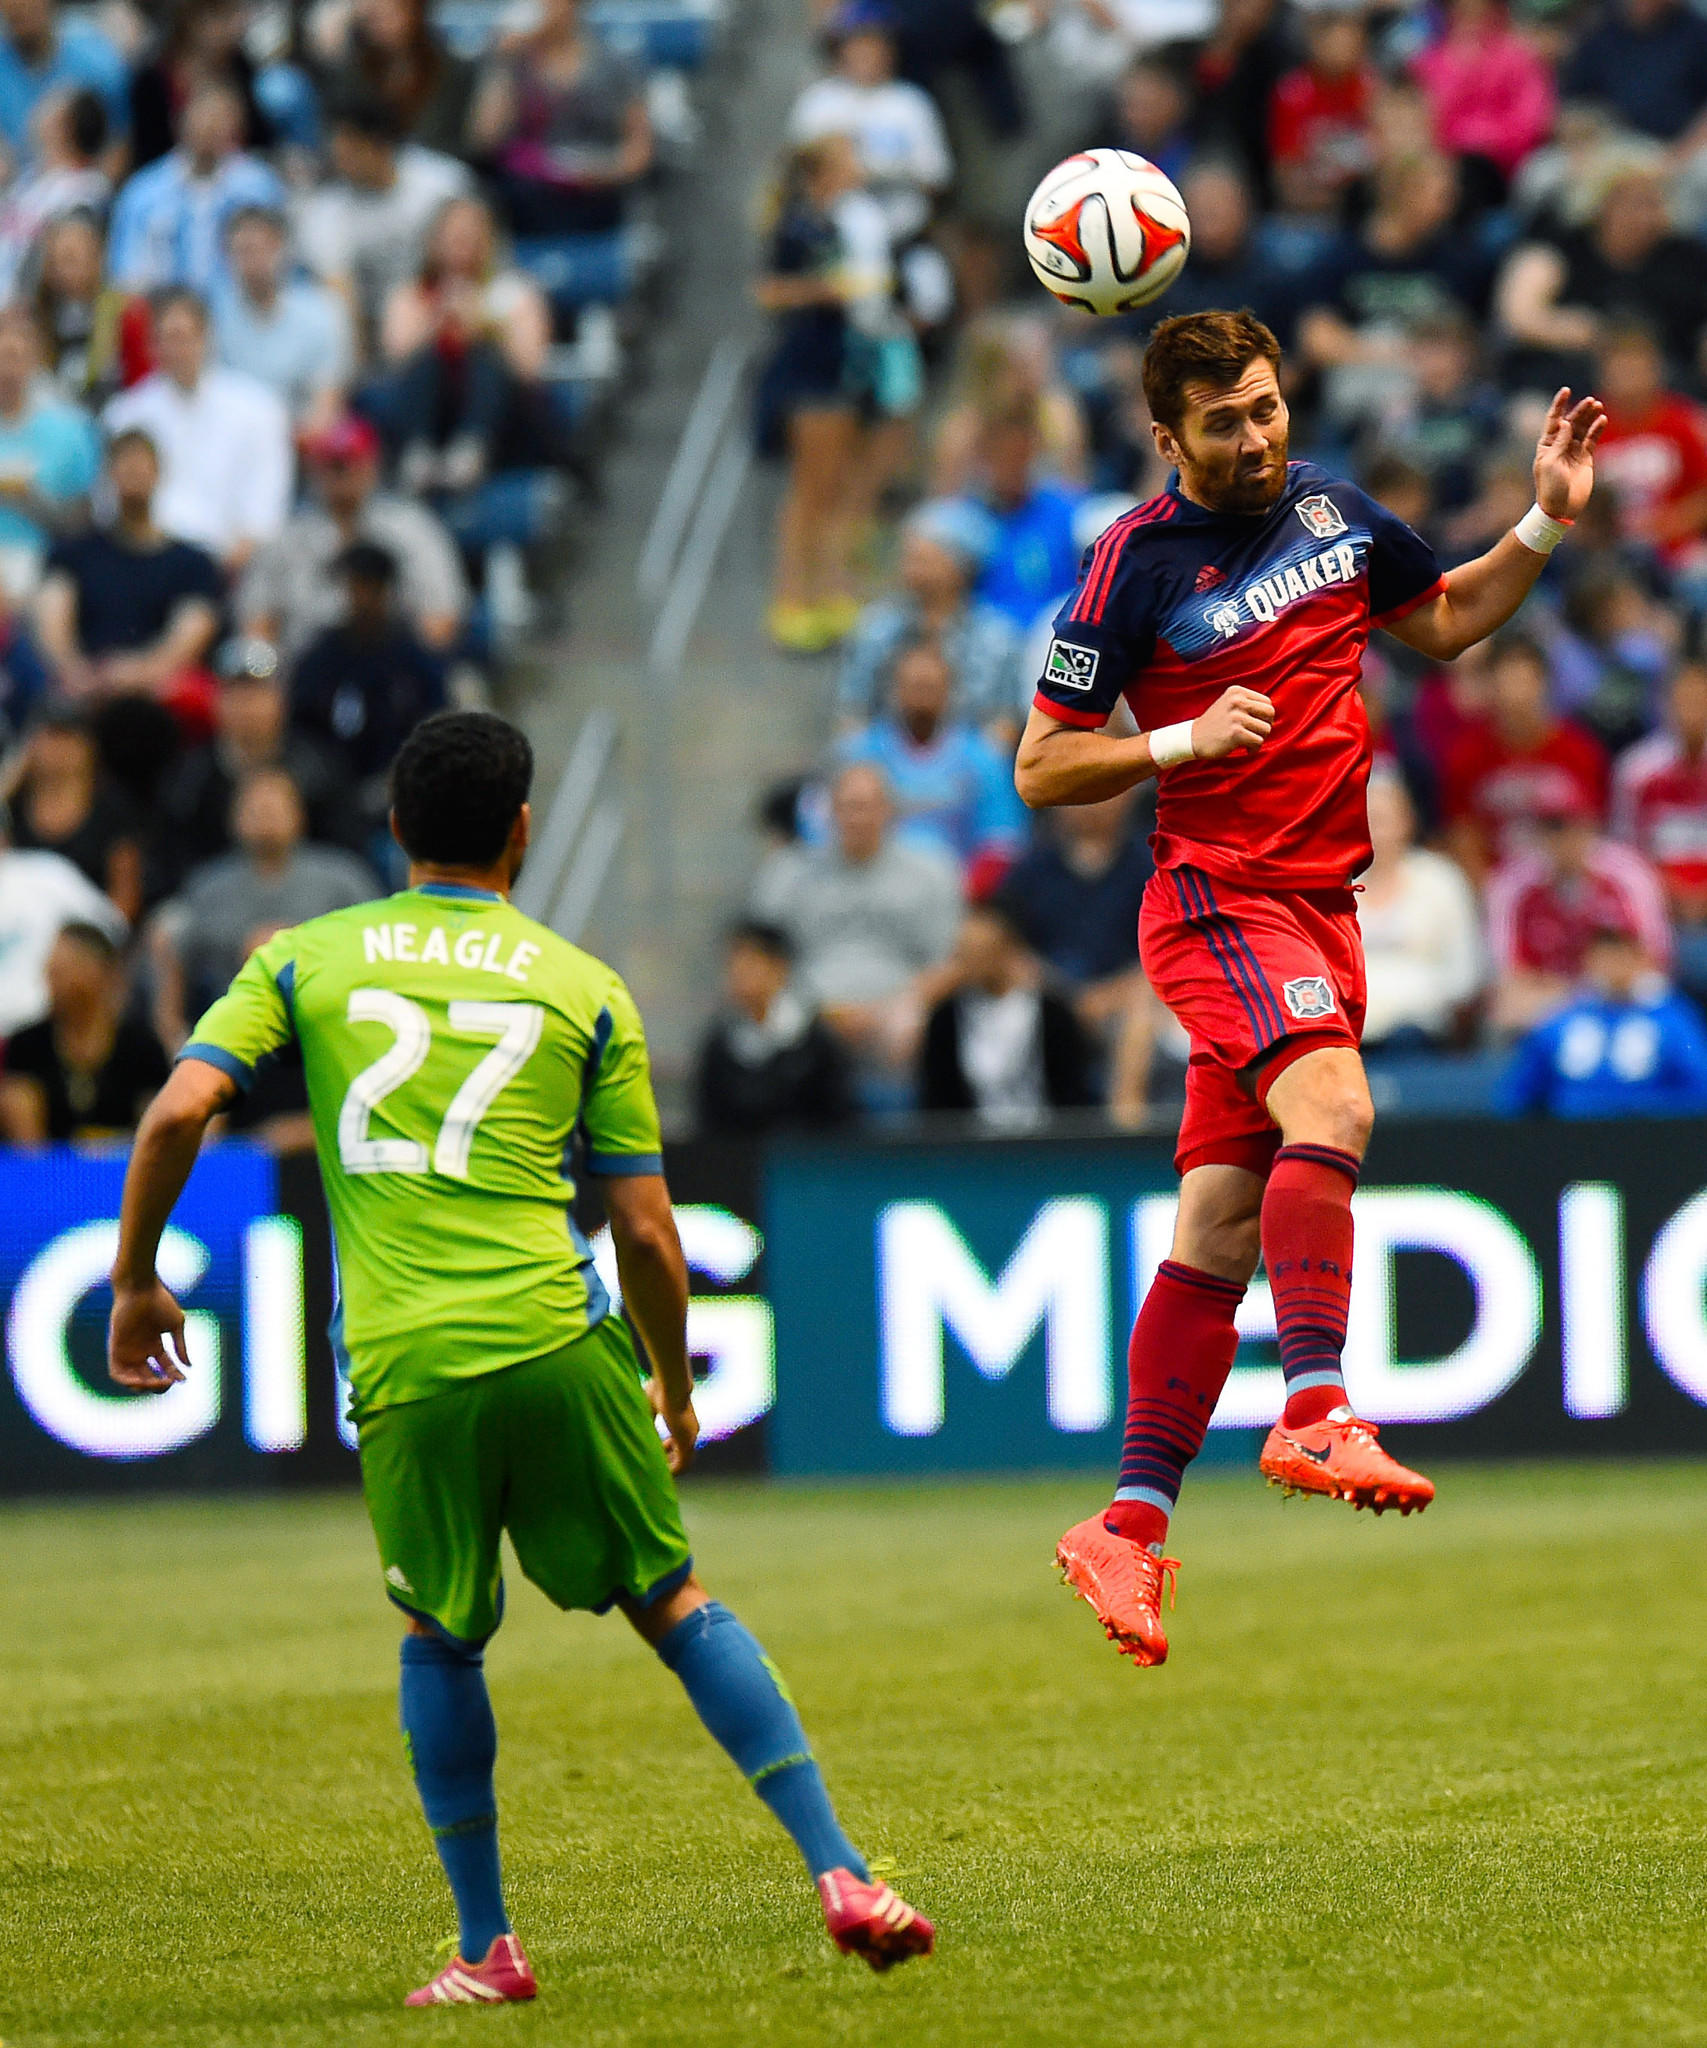 Fire defender Gonzalo Segares heads the ball against Seattle Sounders FC midfielder Lamar Neagle during the first half at Toyota Park.